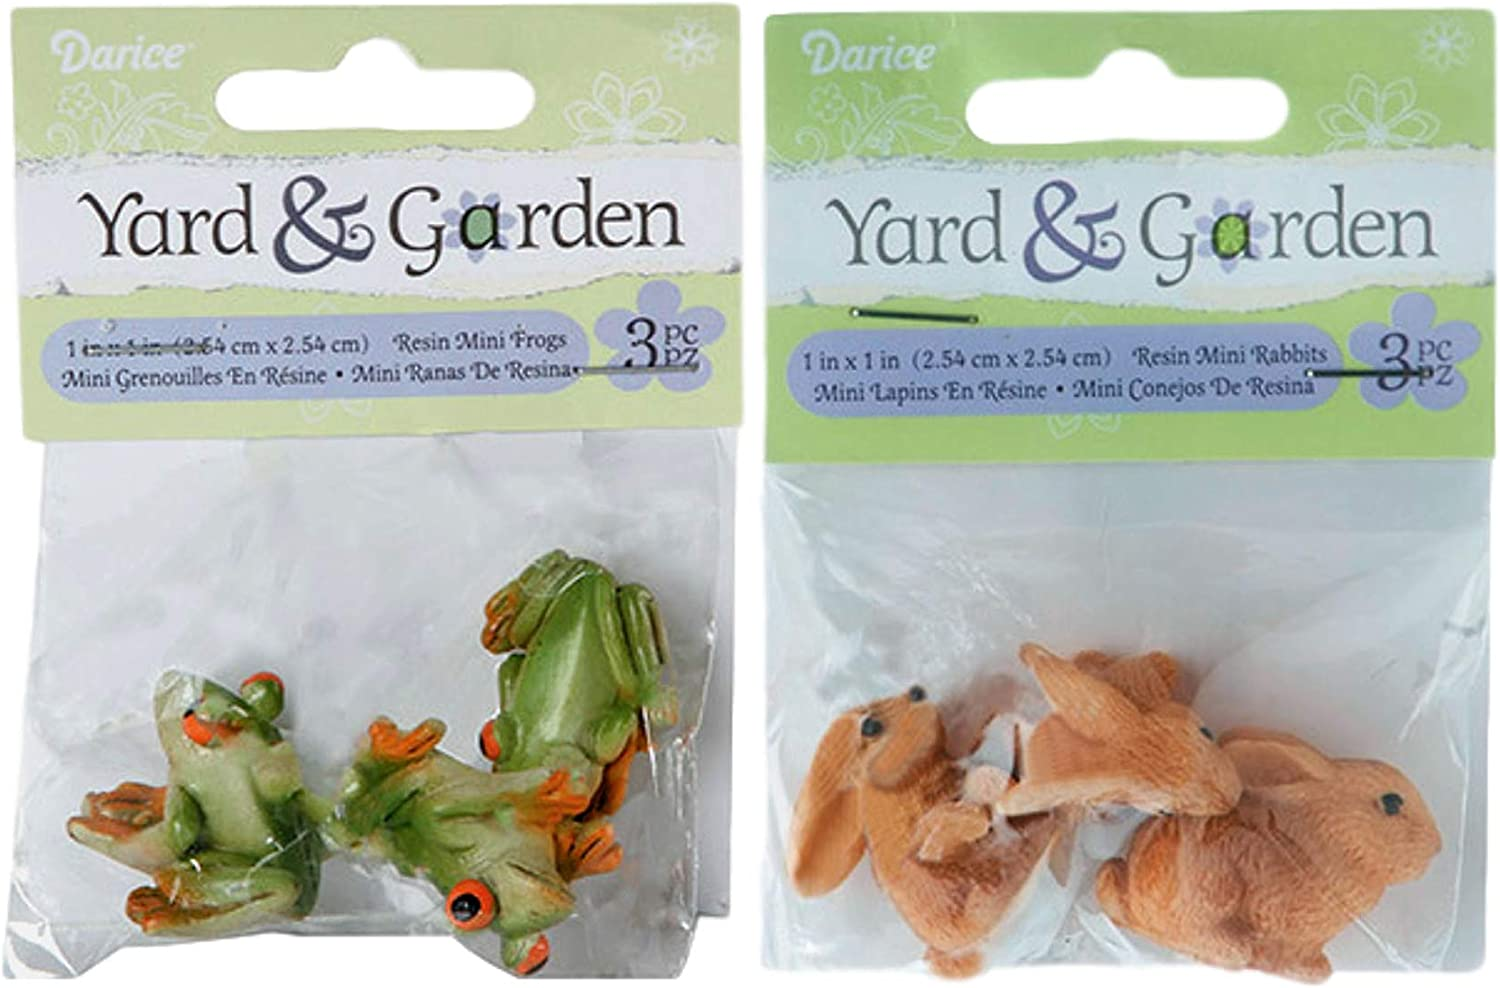 Darice Yard & Garden Miniature Rabbits and Frogs Resin Figurines Fairy Garden Accessories — Garden Decorations, Dollhouse Accessories and Lawn Ornaments — 1 x 1 x 1 Inches Each, 2 x 3-Pack